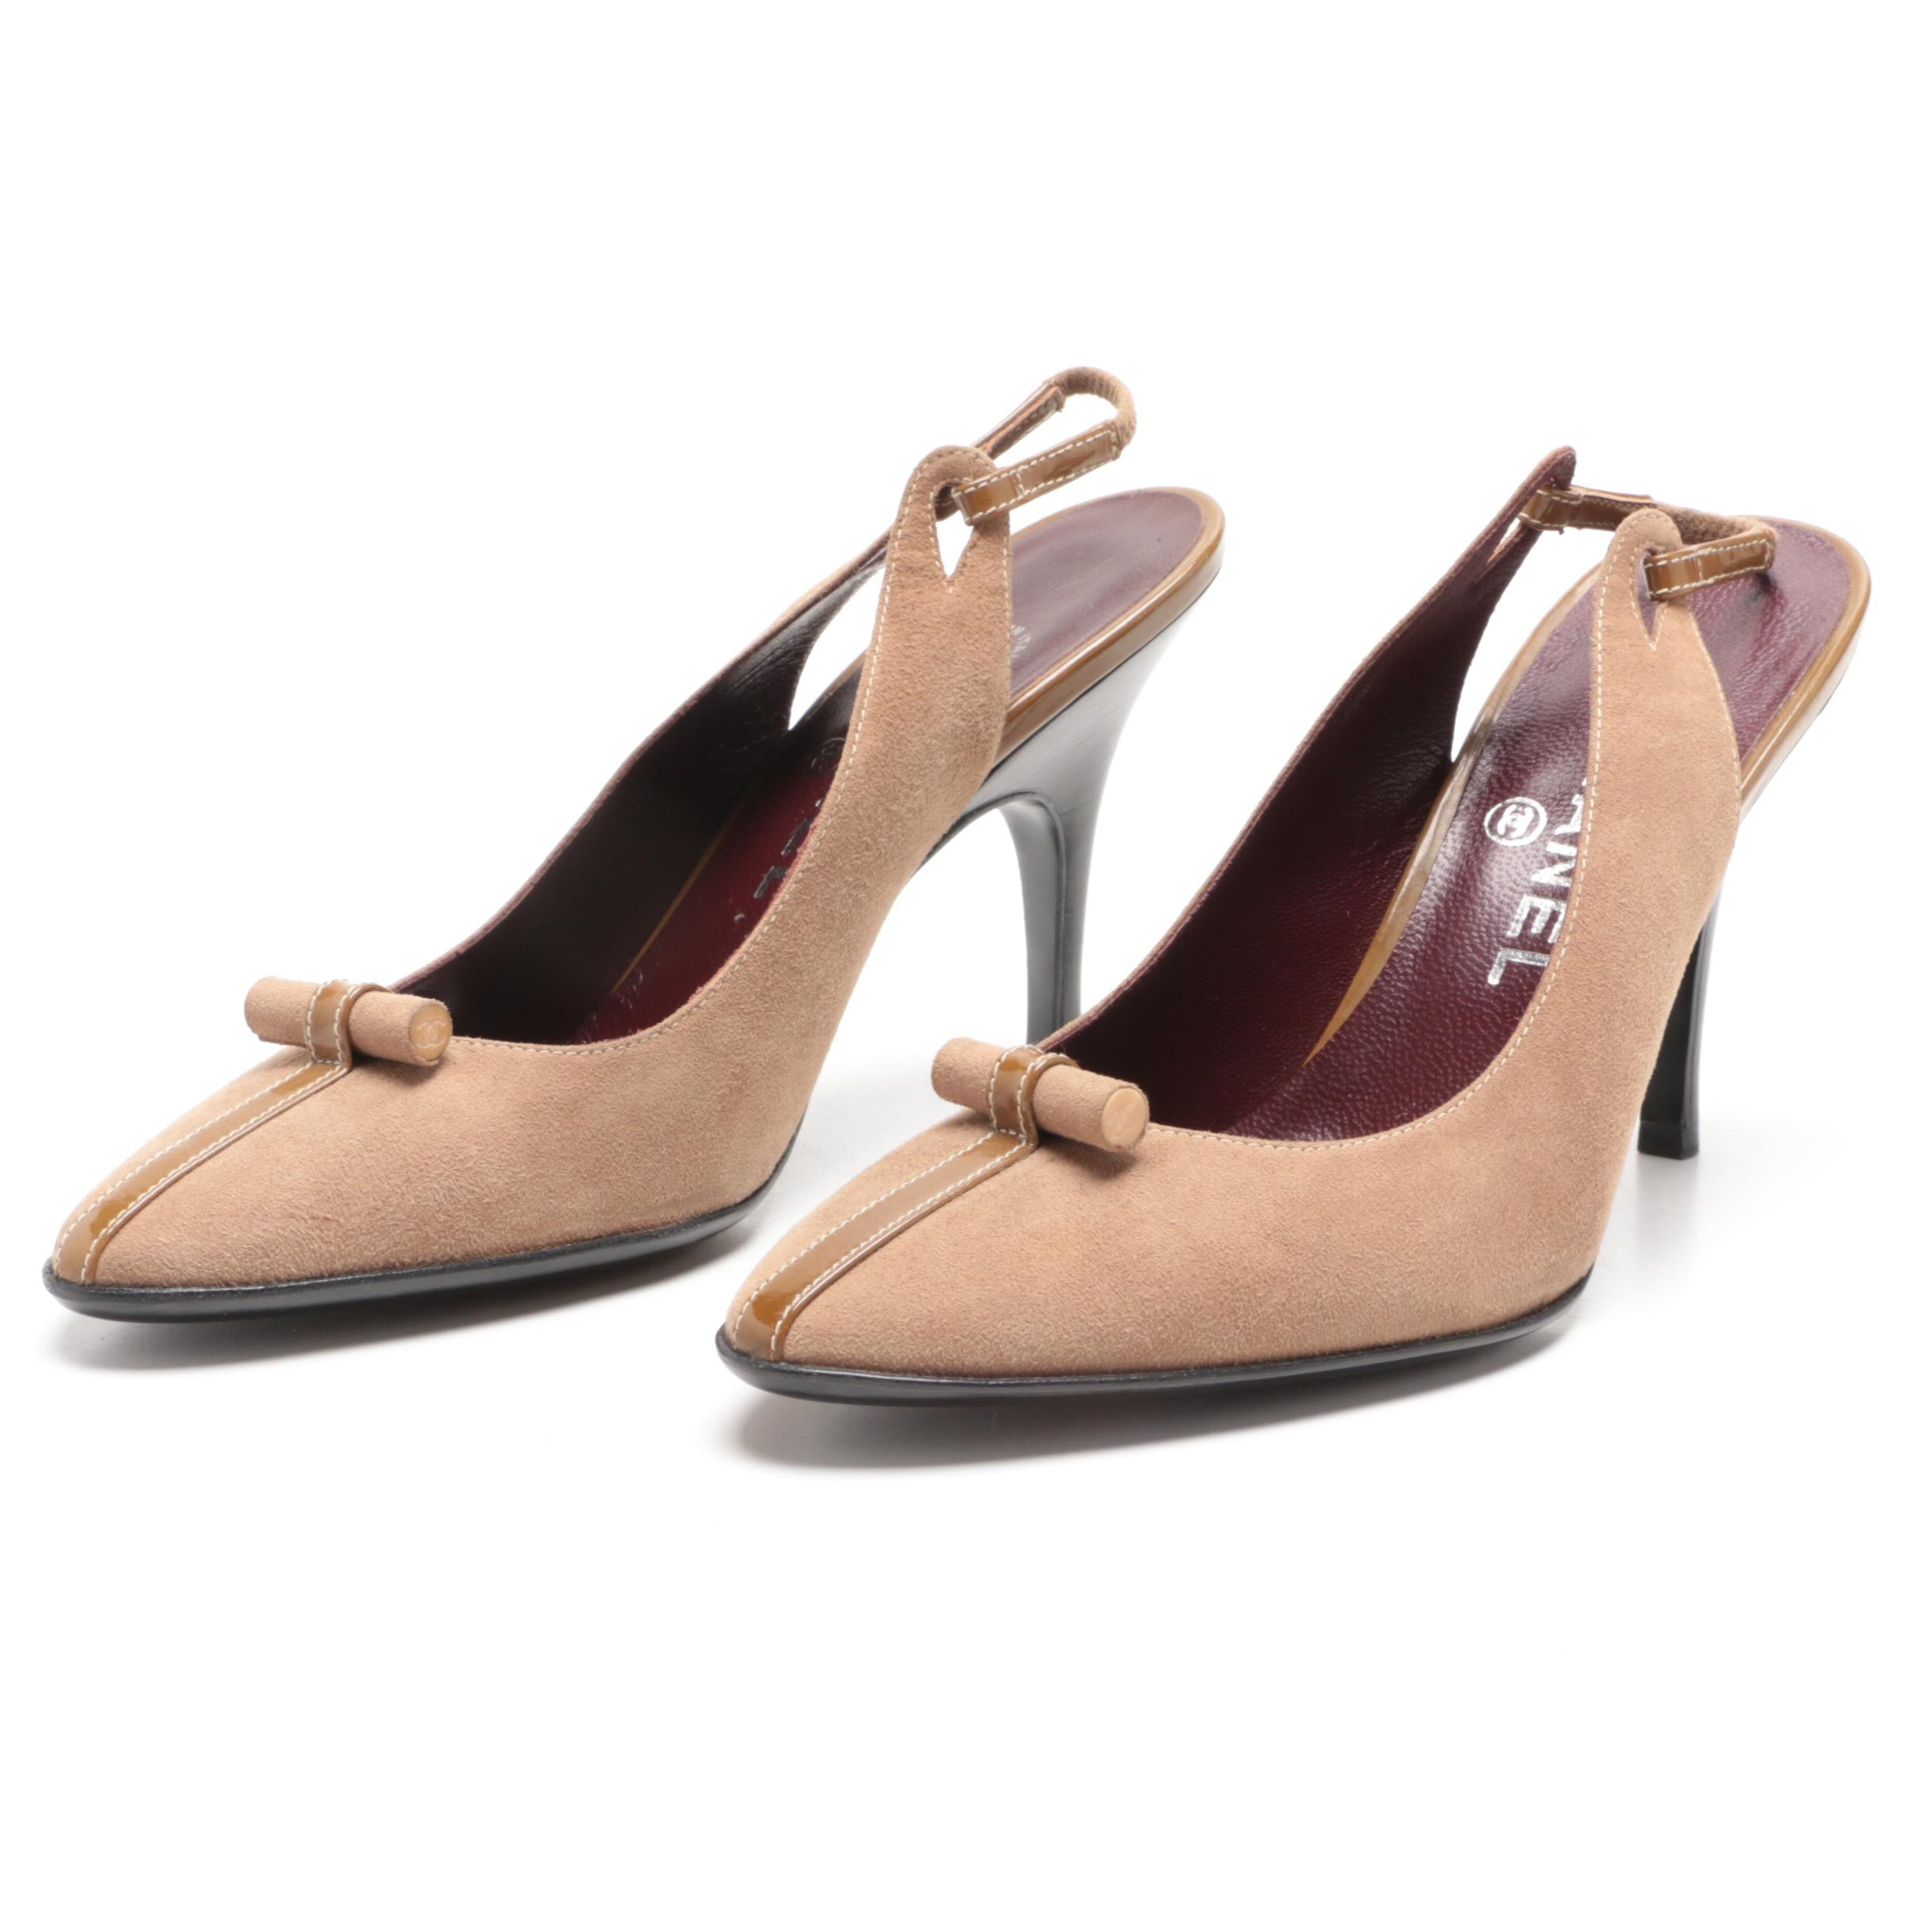 Chanel Light Brown Suede Slingback Heels with Patent Leather Detail